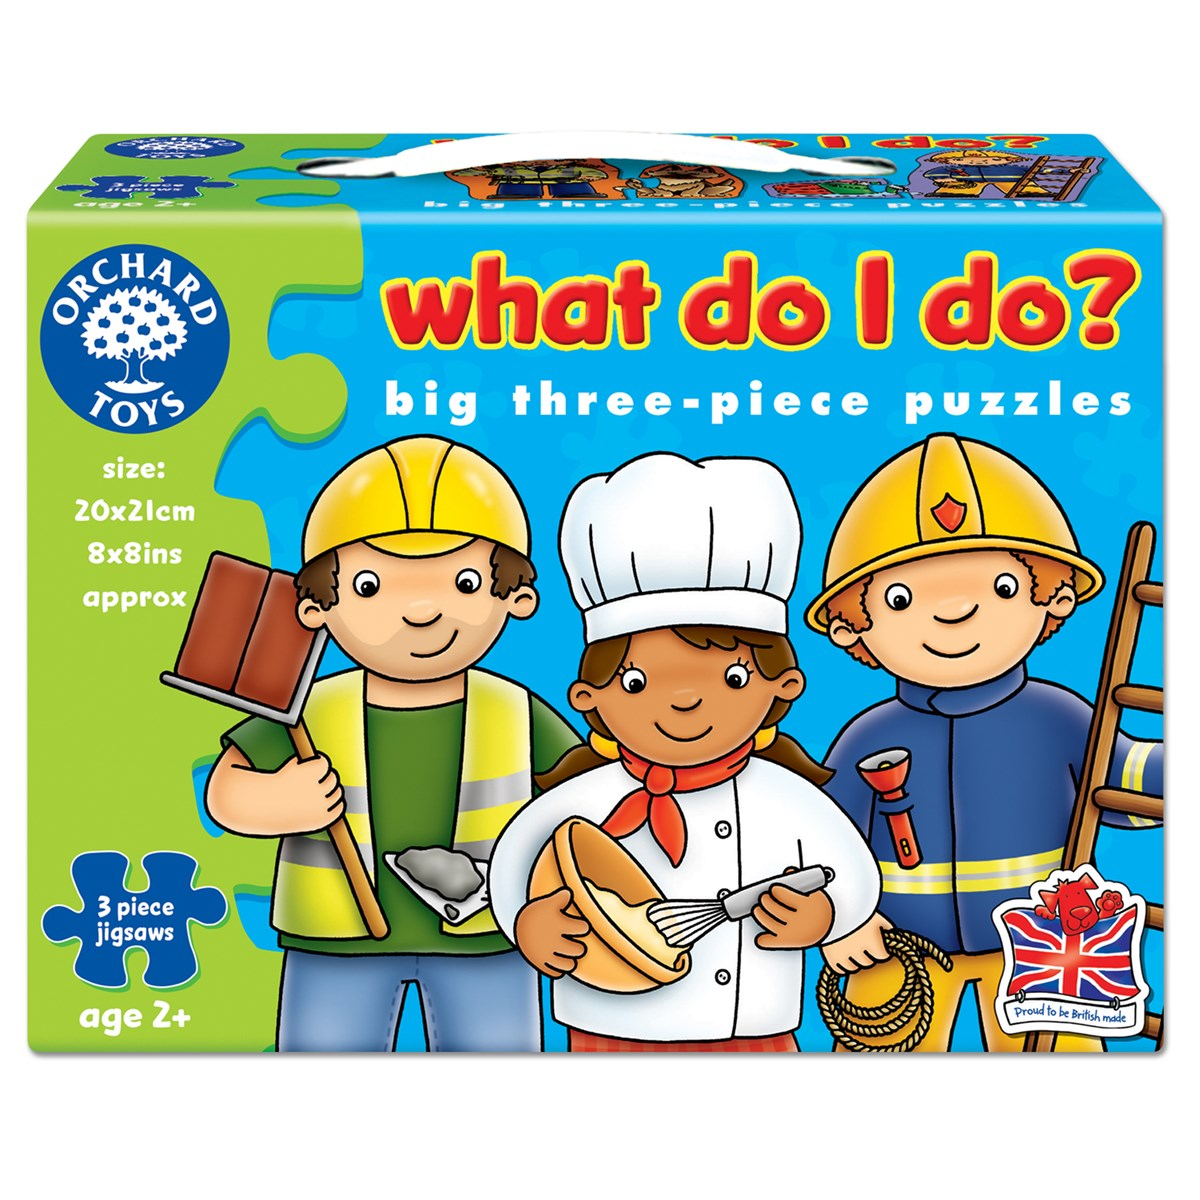 Details about Orchard Toys 213 What Do I Do? First Jigsaw Puzzles Toddler  Children Age 2yrs+